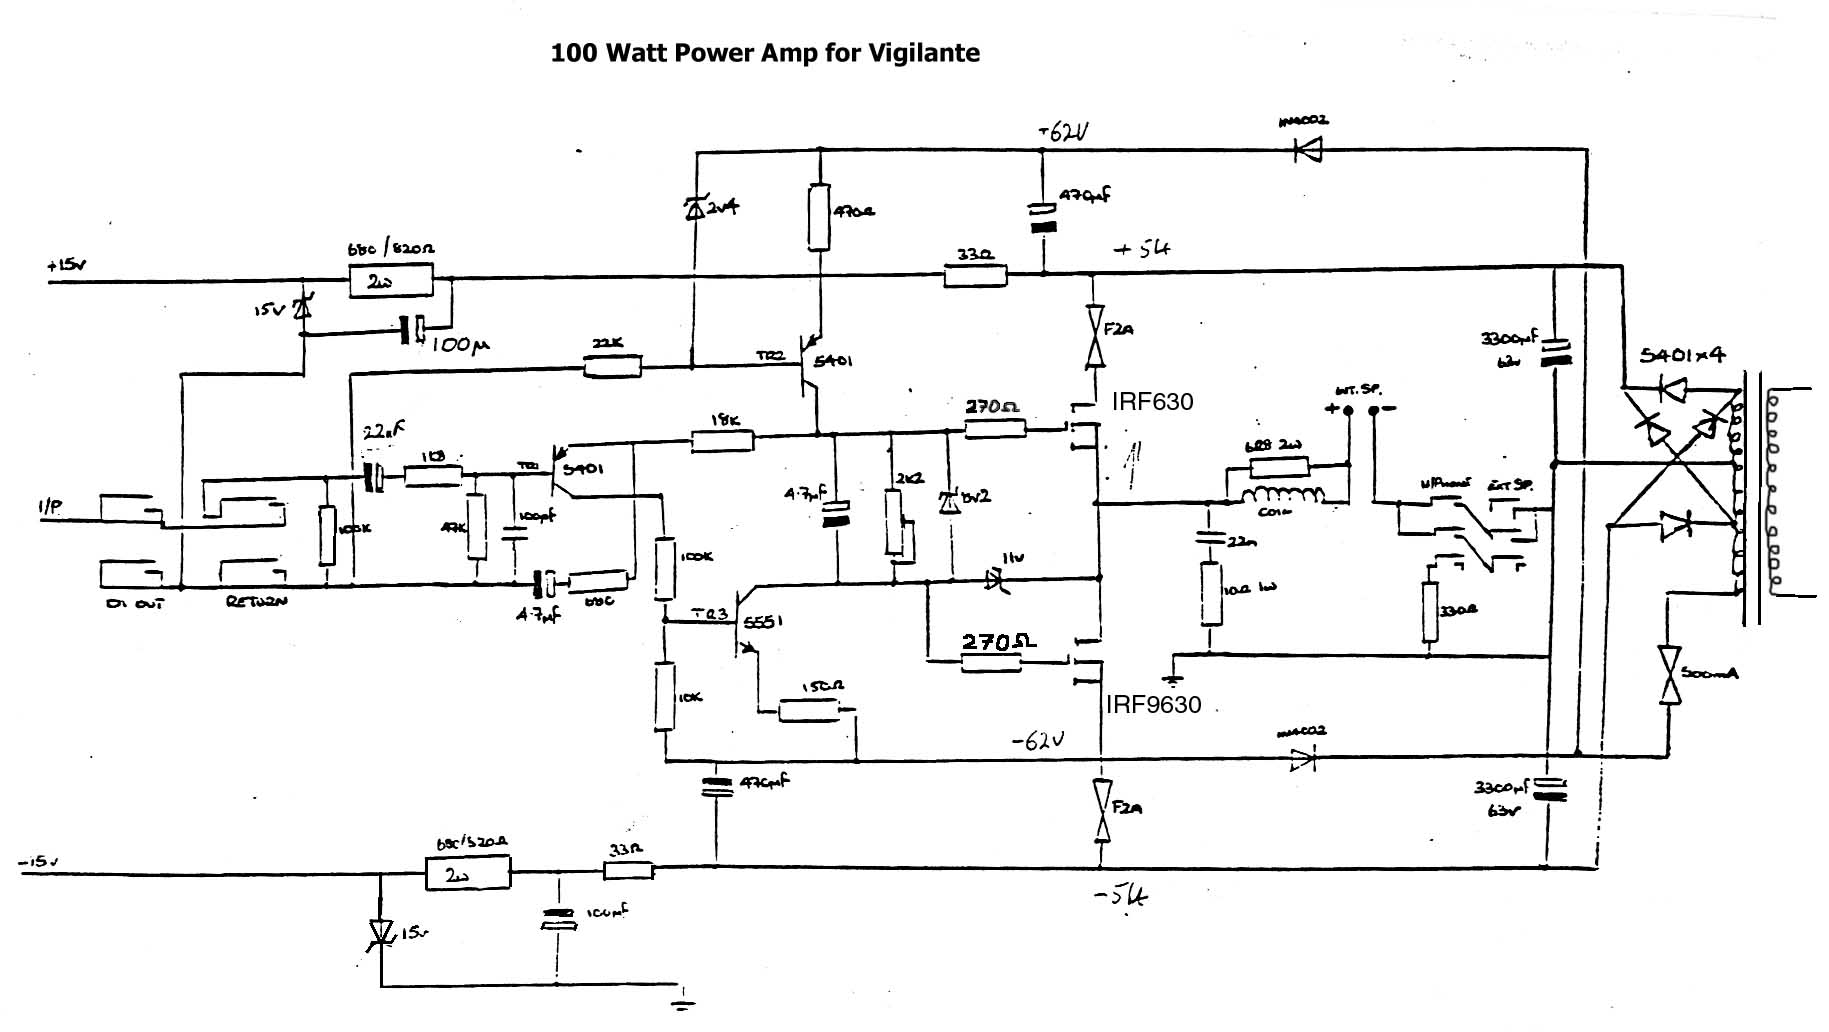 100 Watt Power Amp Schematic Trusted Wiring Diagrams Tda7293audiopoweramplifier100watts Circuit Audio Amplifier Vox Vintage 50